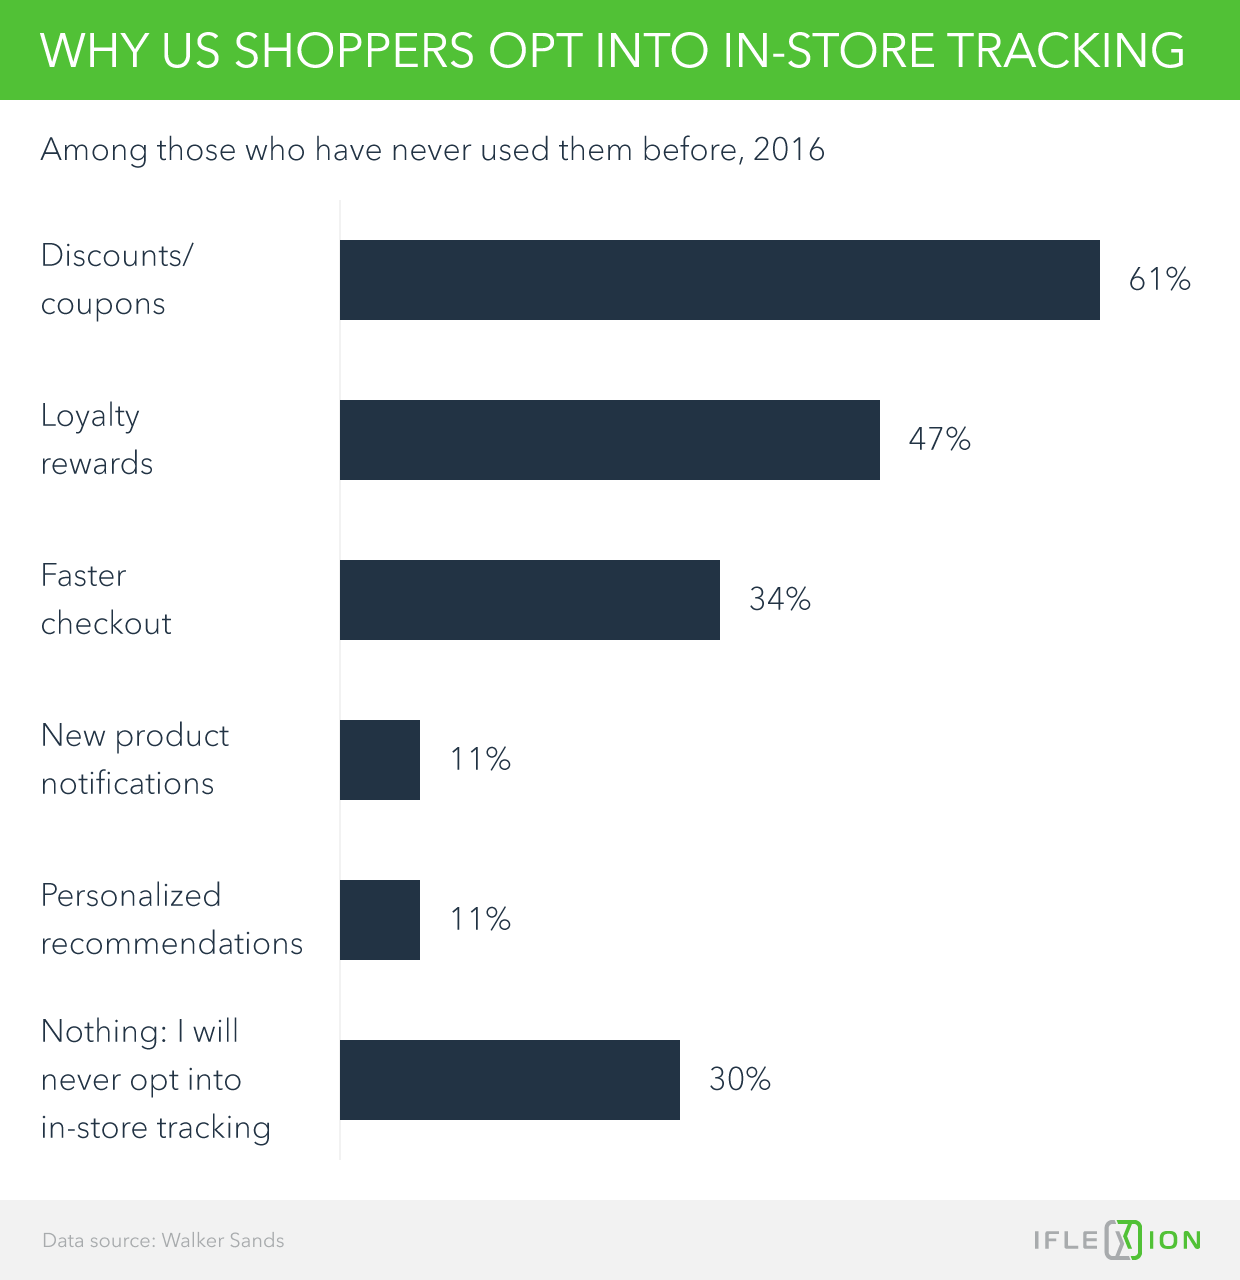 Why U.S. shoppers opt into in-store tracking